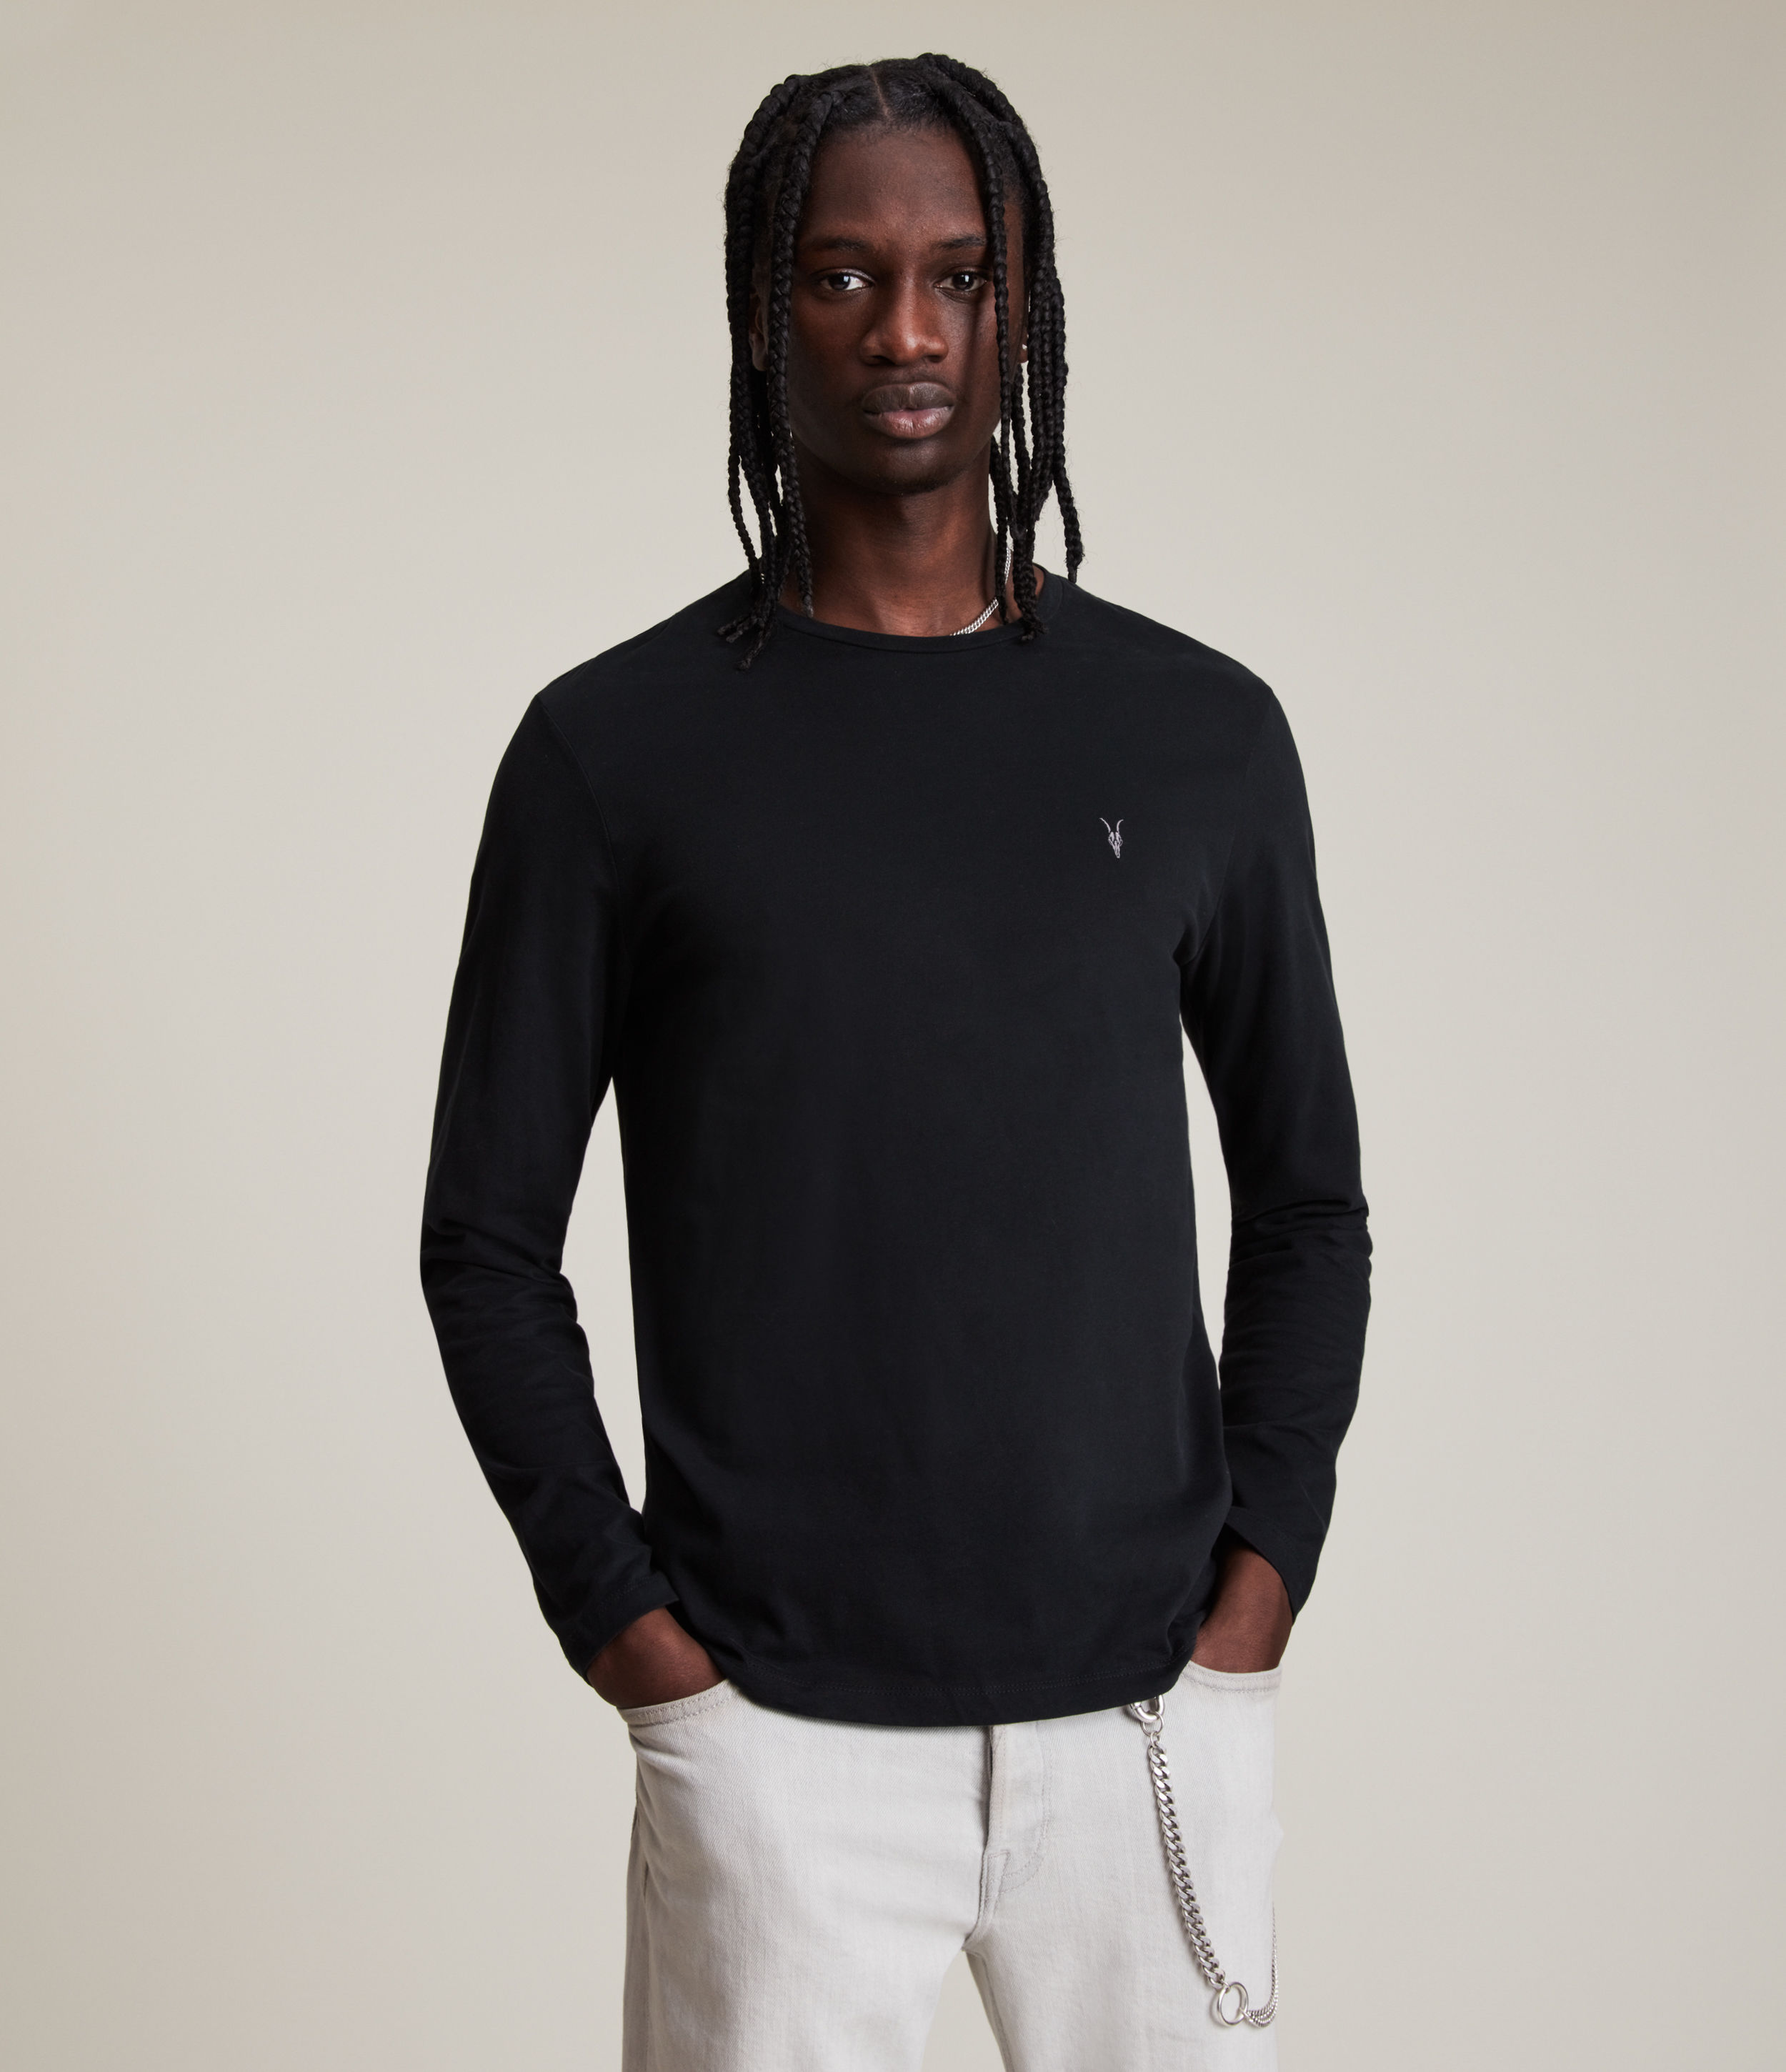 AllSaints Men's Cotton Regular Fit Brace Long Sleeve Tonic Crew T-Shirt, Black, Size: S